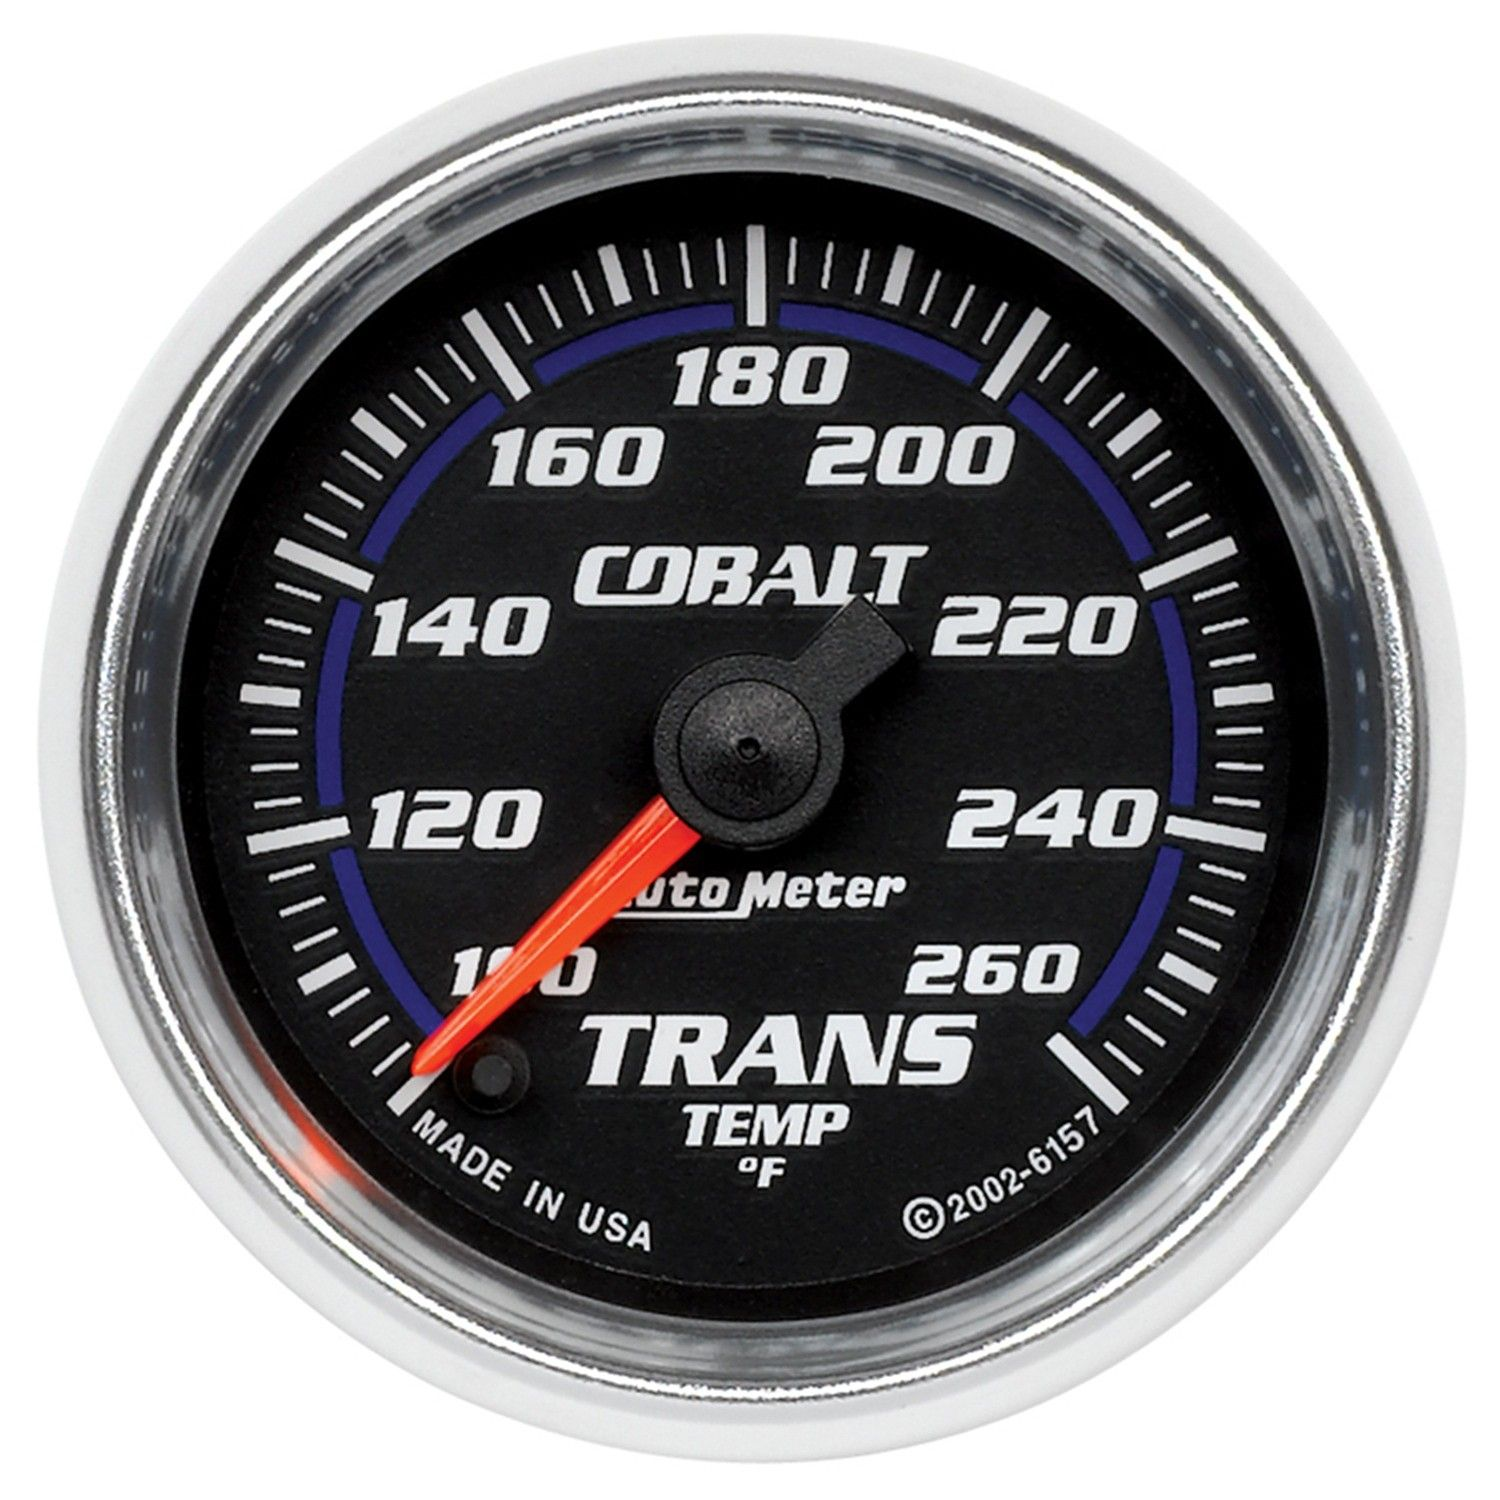 hight resolution of 2 trans temp 100 260 f fse cobalt gauges cobalt